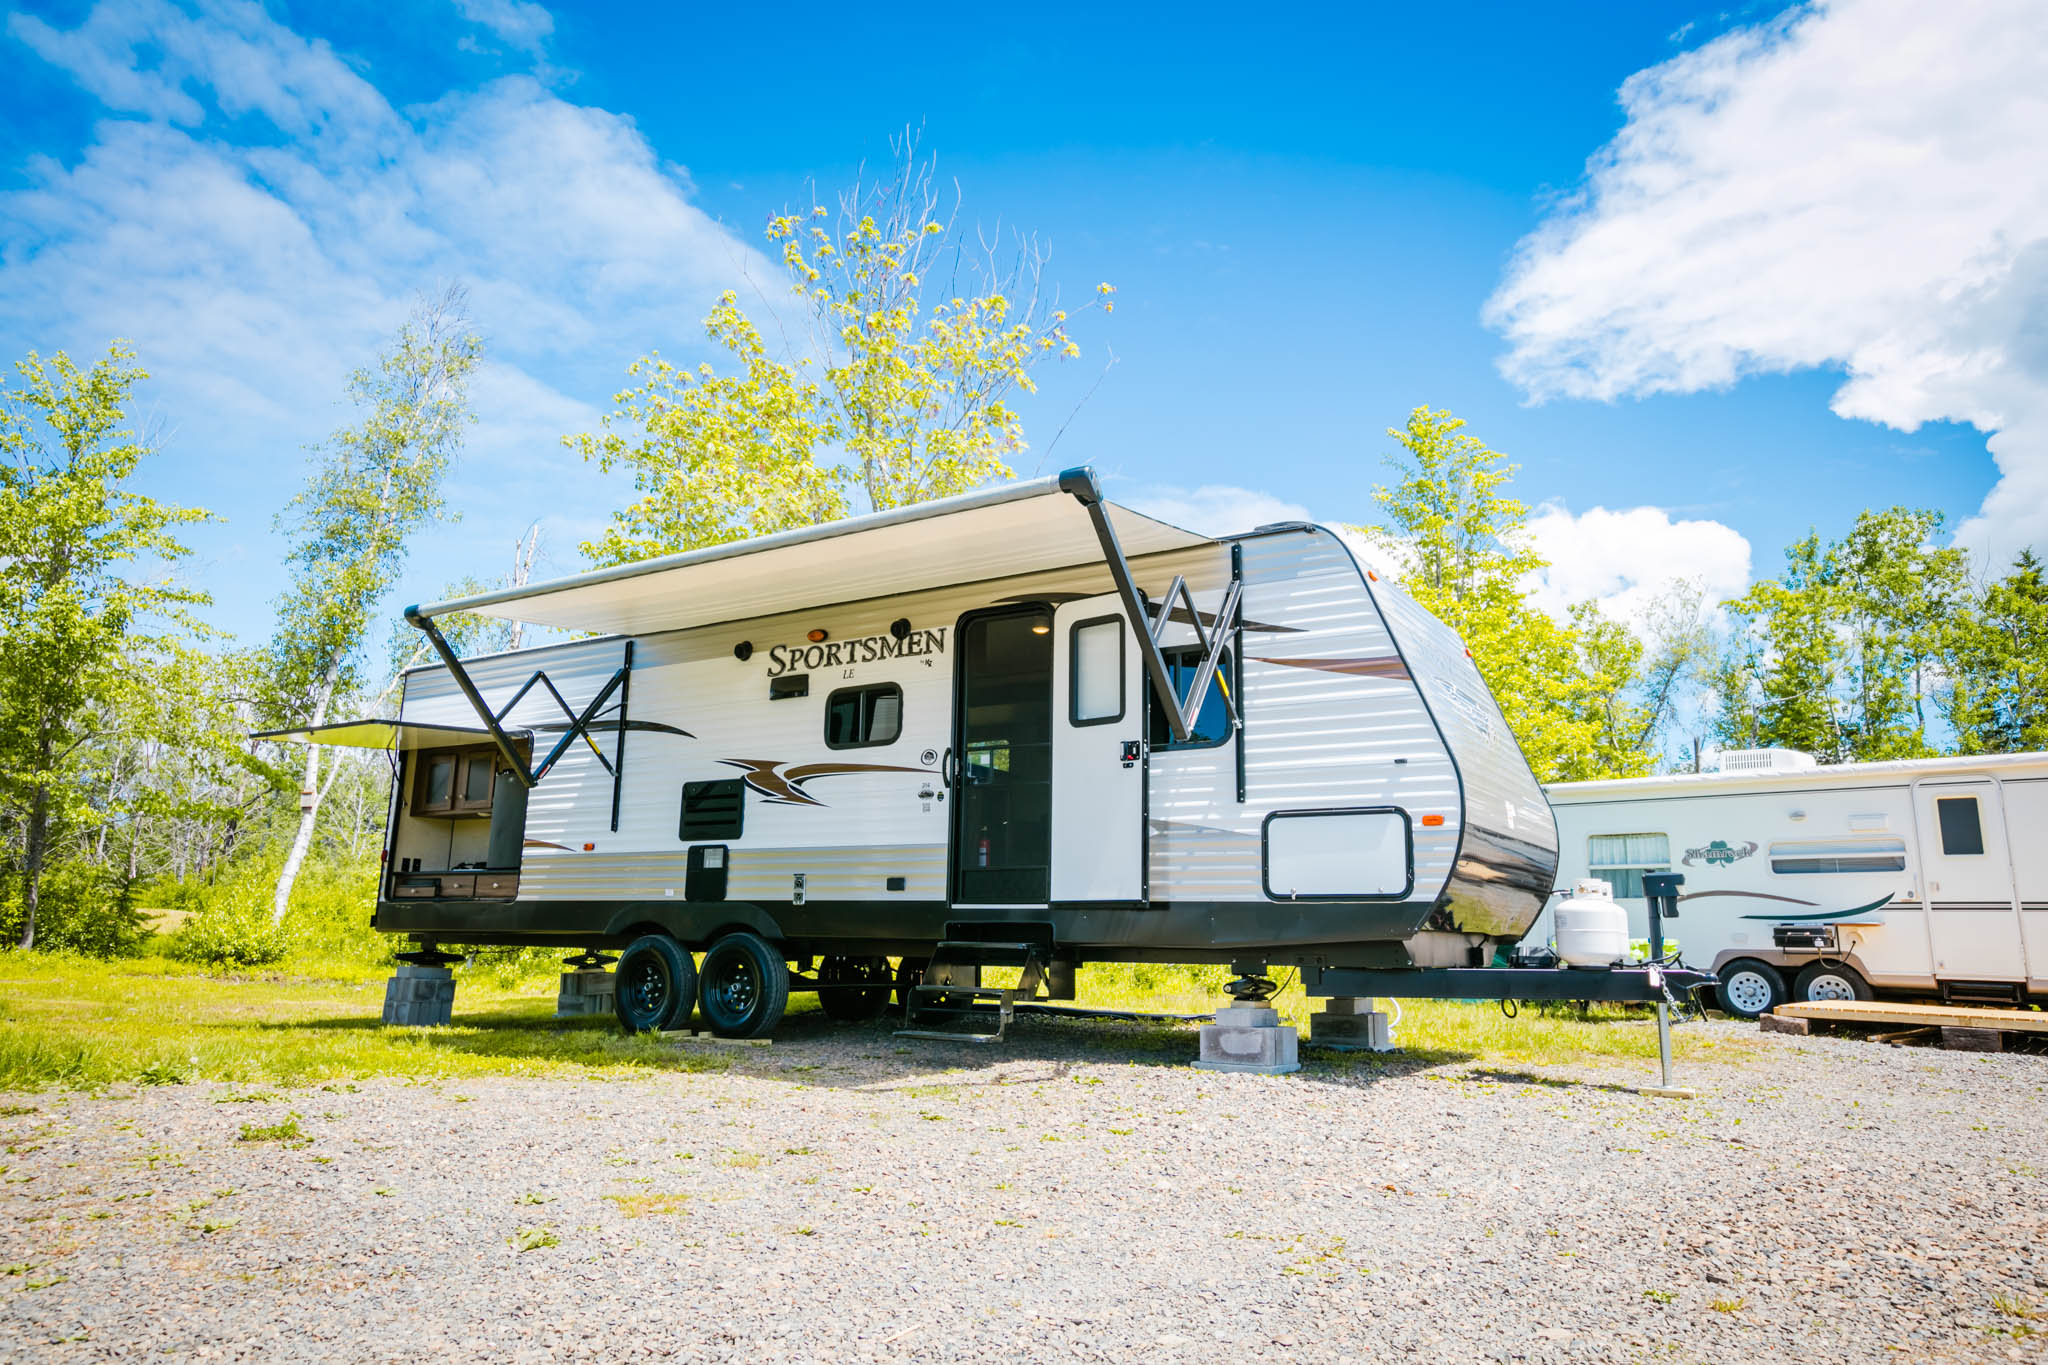 How Much Does It Cost To Rent An RV In Ontario?